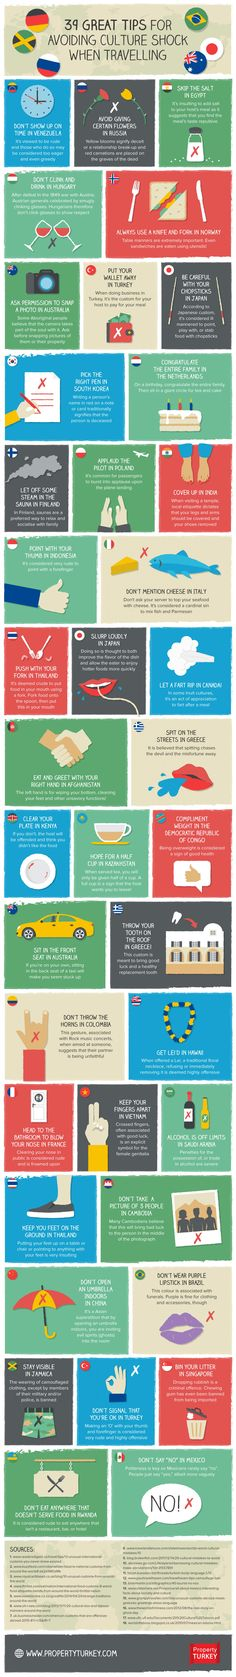 Infographic: 39 Do's And Don'ts To Note When Traveling - DesignTAXI.com